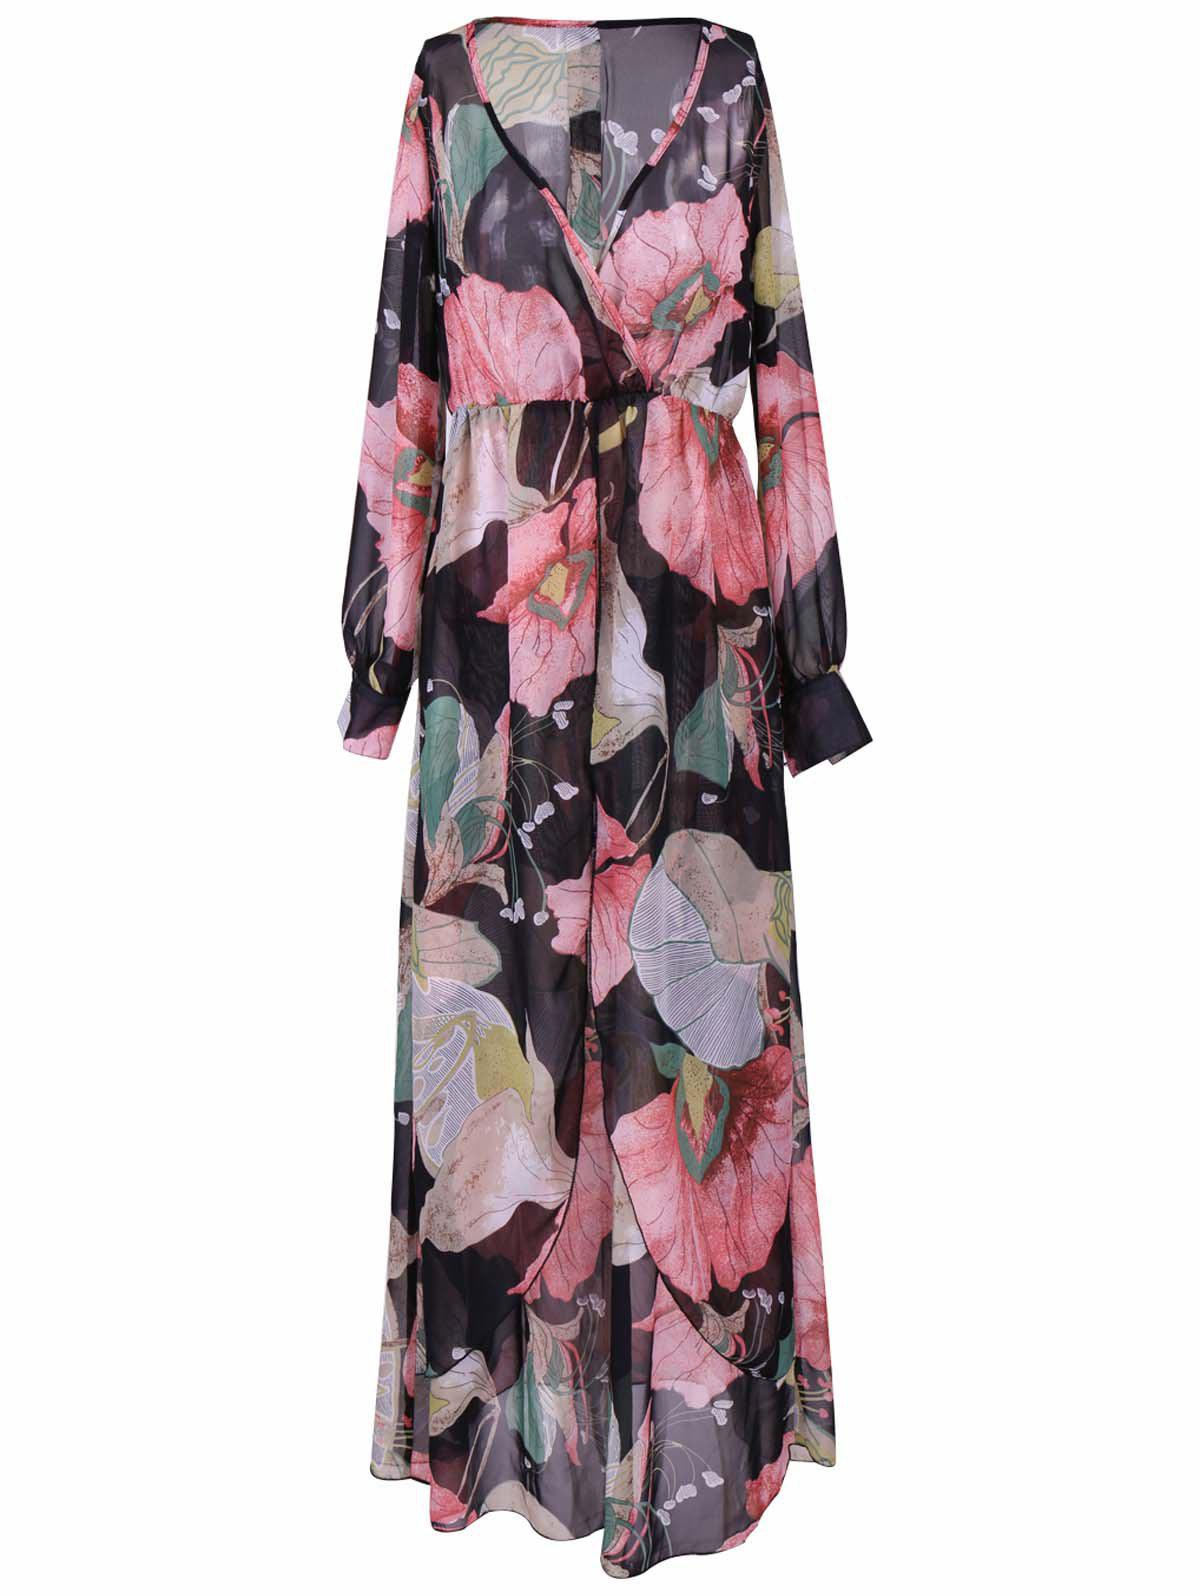 Bohemian Plunging Neck Floral Dress For Women - XL BLACK